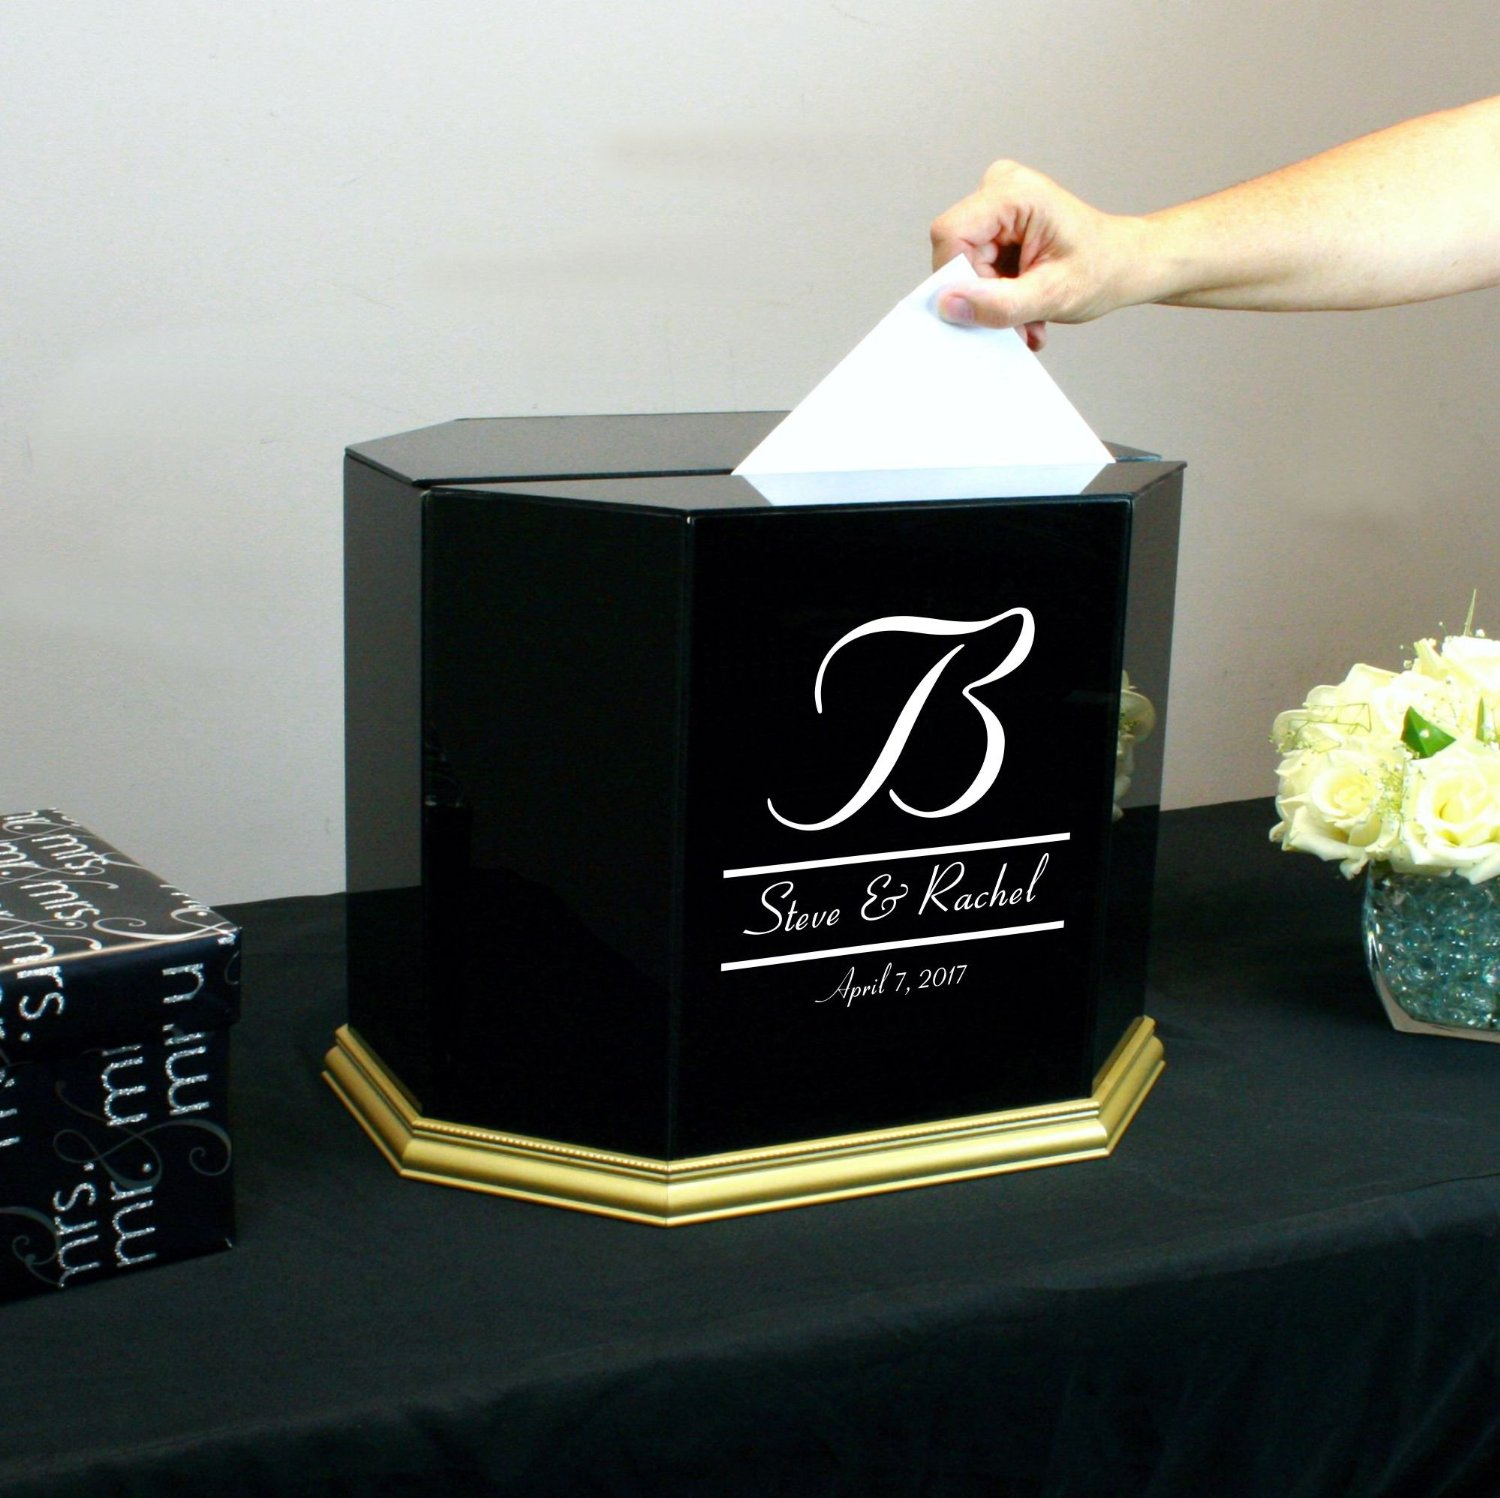 Buy Personalized Wedding Card Box Black Glass with Gold Trim in ...